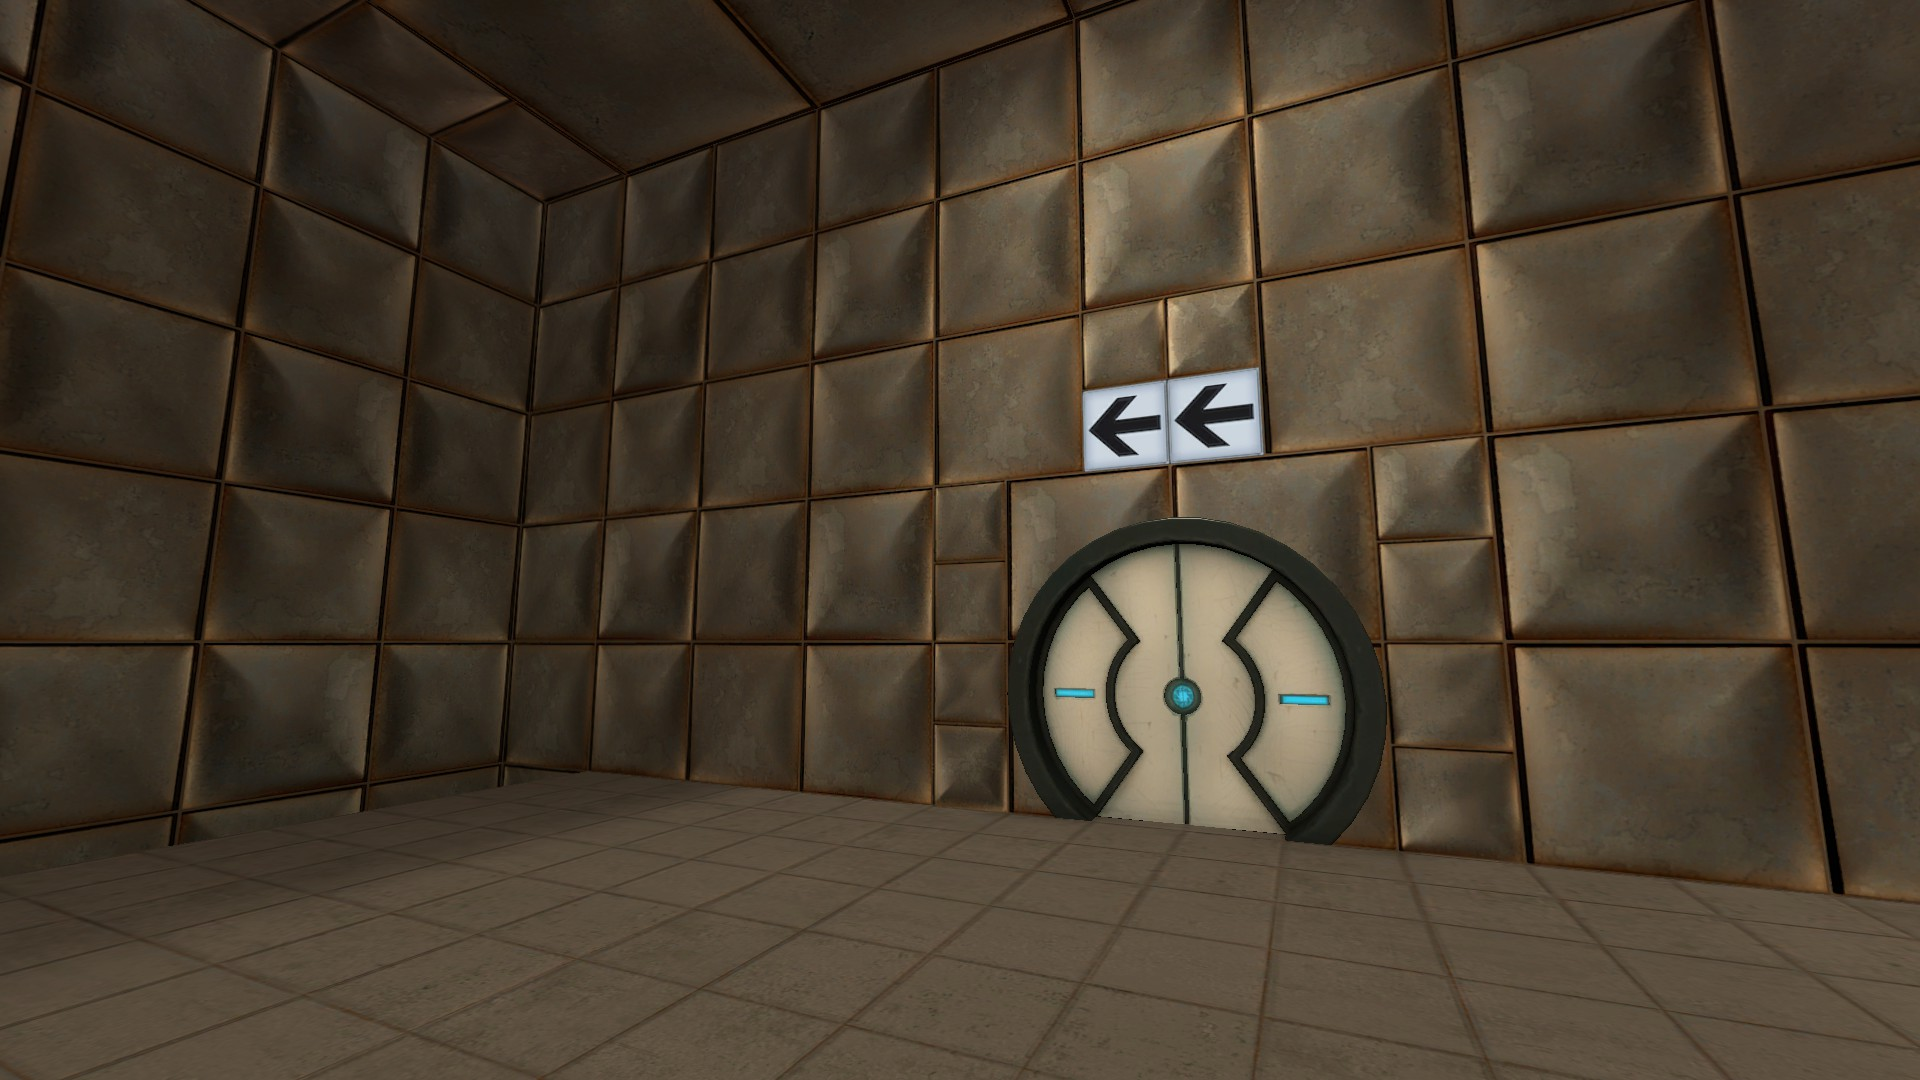 The exit sign at the end of the second fling room flips to reveal arrows pointing to another part of the level.